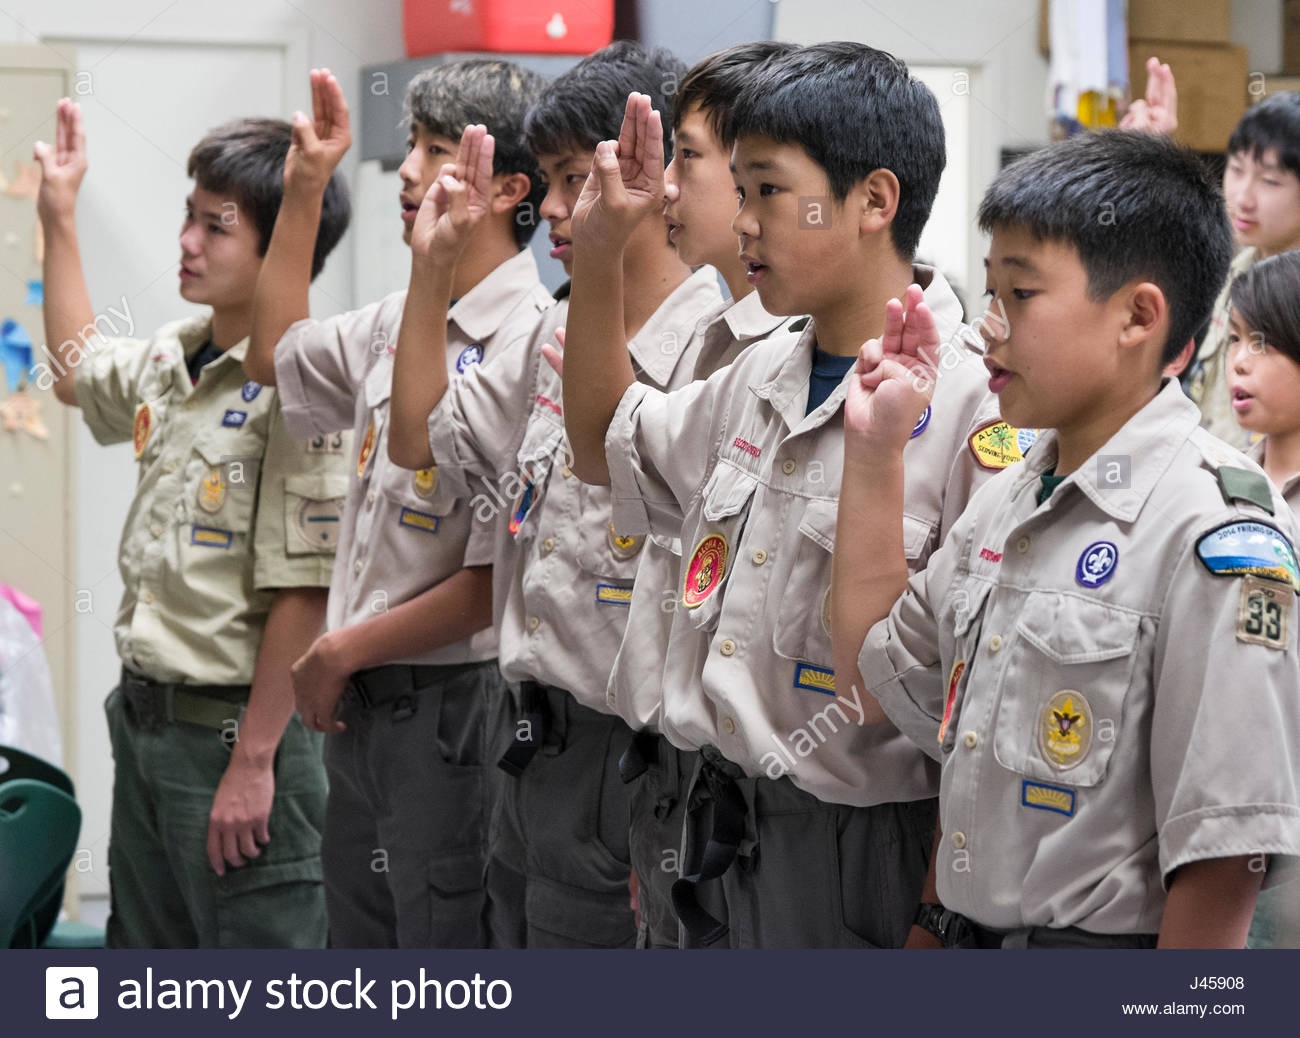 Group of Boy Scouts standing at attention making the Boy Scout sign with their hand, Honolulu, Oahu, Hawaii, USA - Stock Image